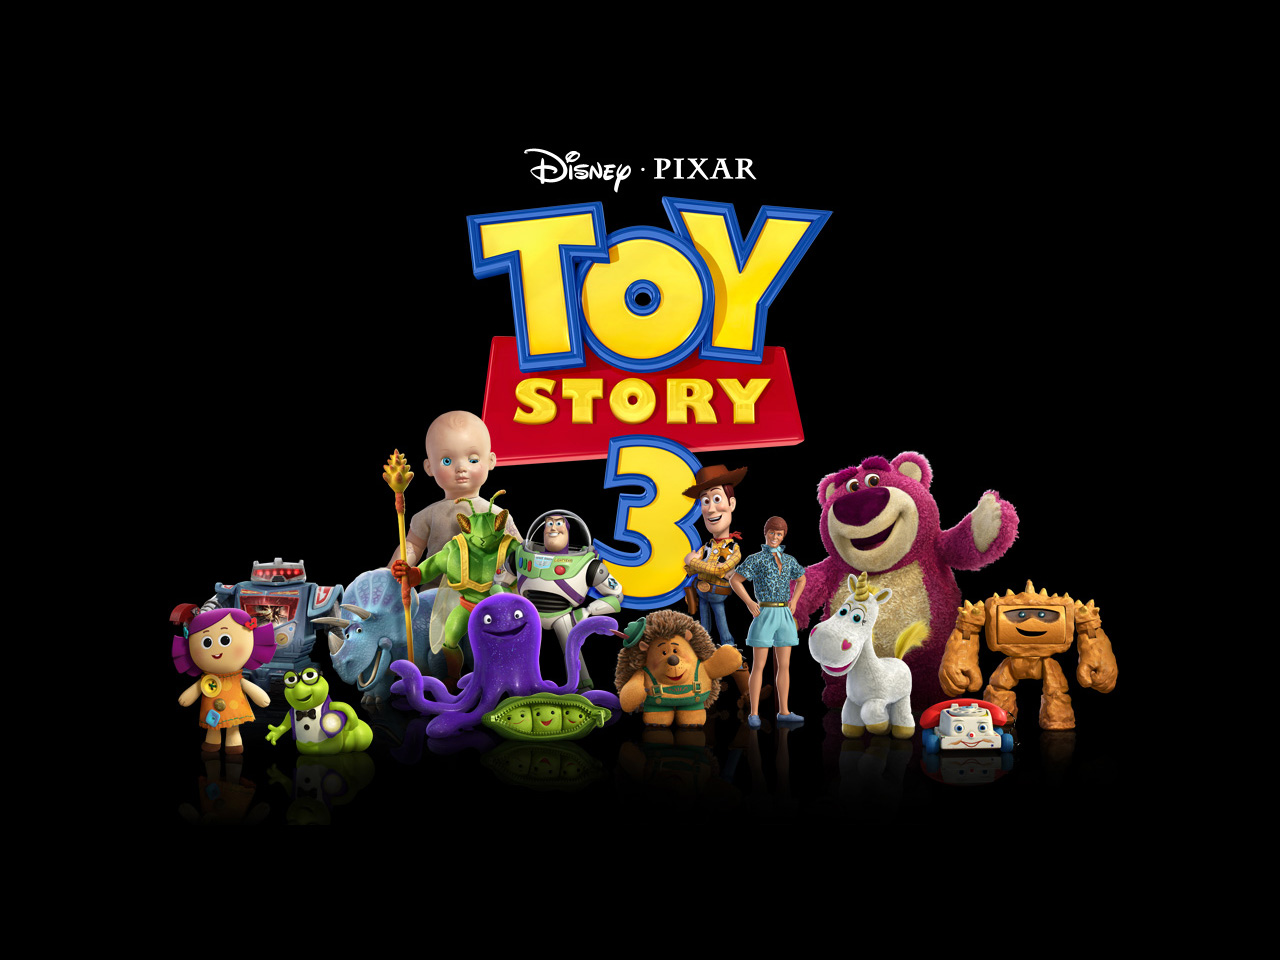 Animation pictures wallpapers toy story wallpapers - Toy story wallpaper ...